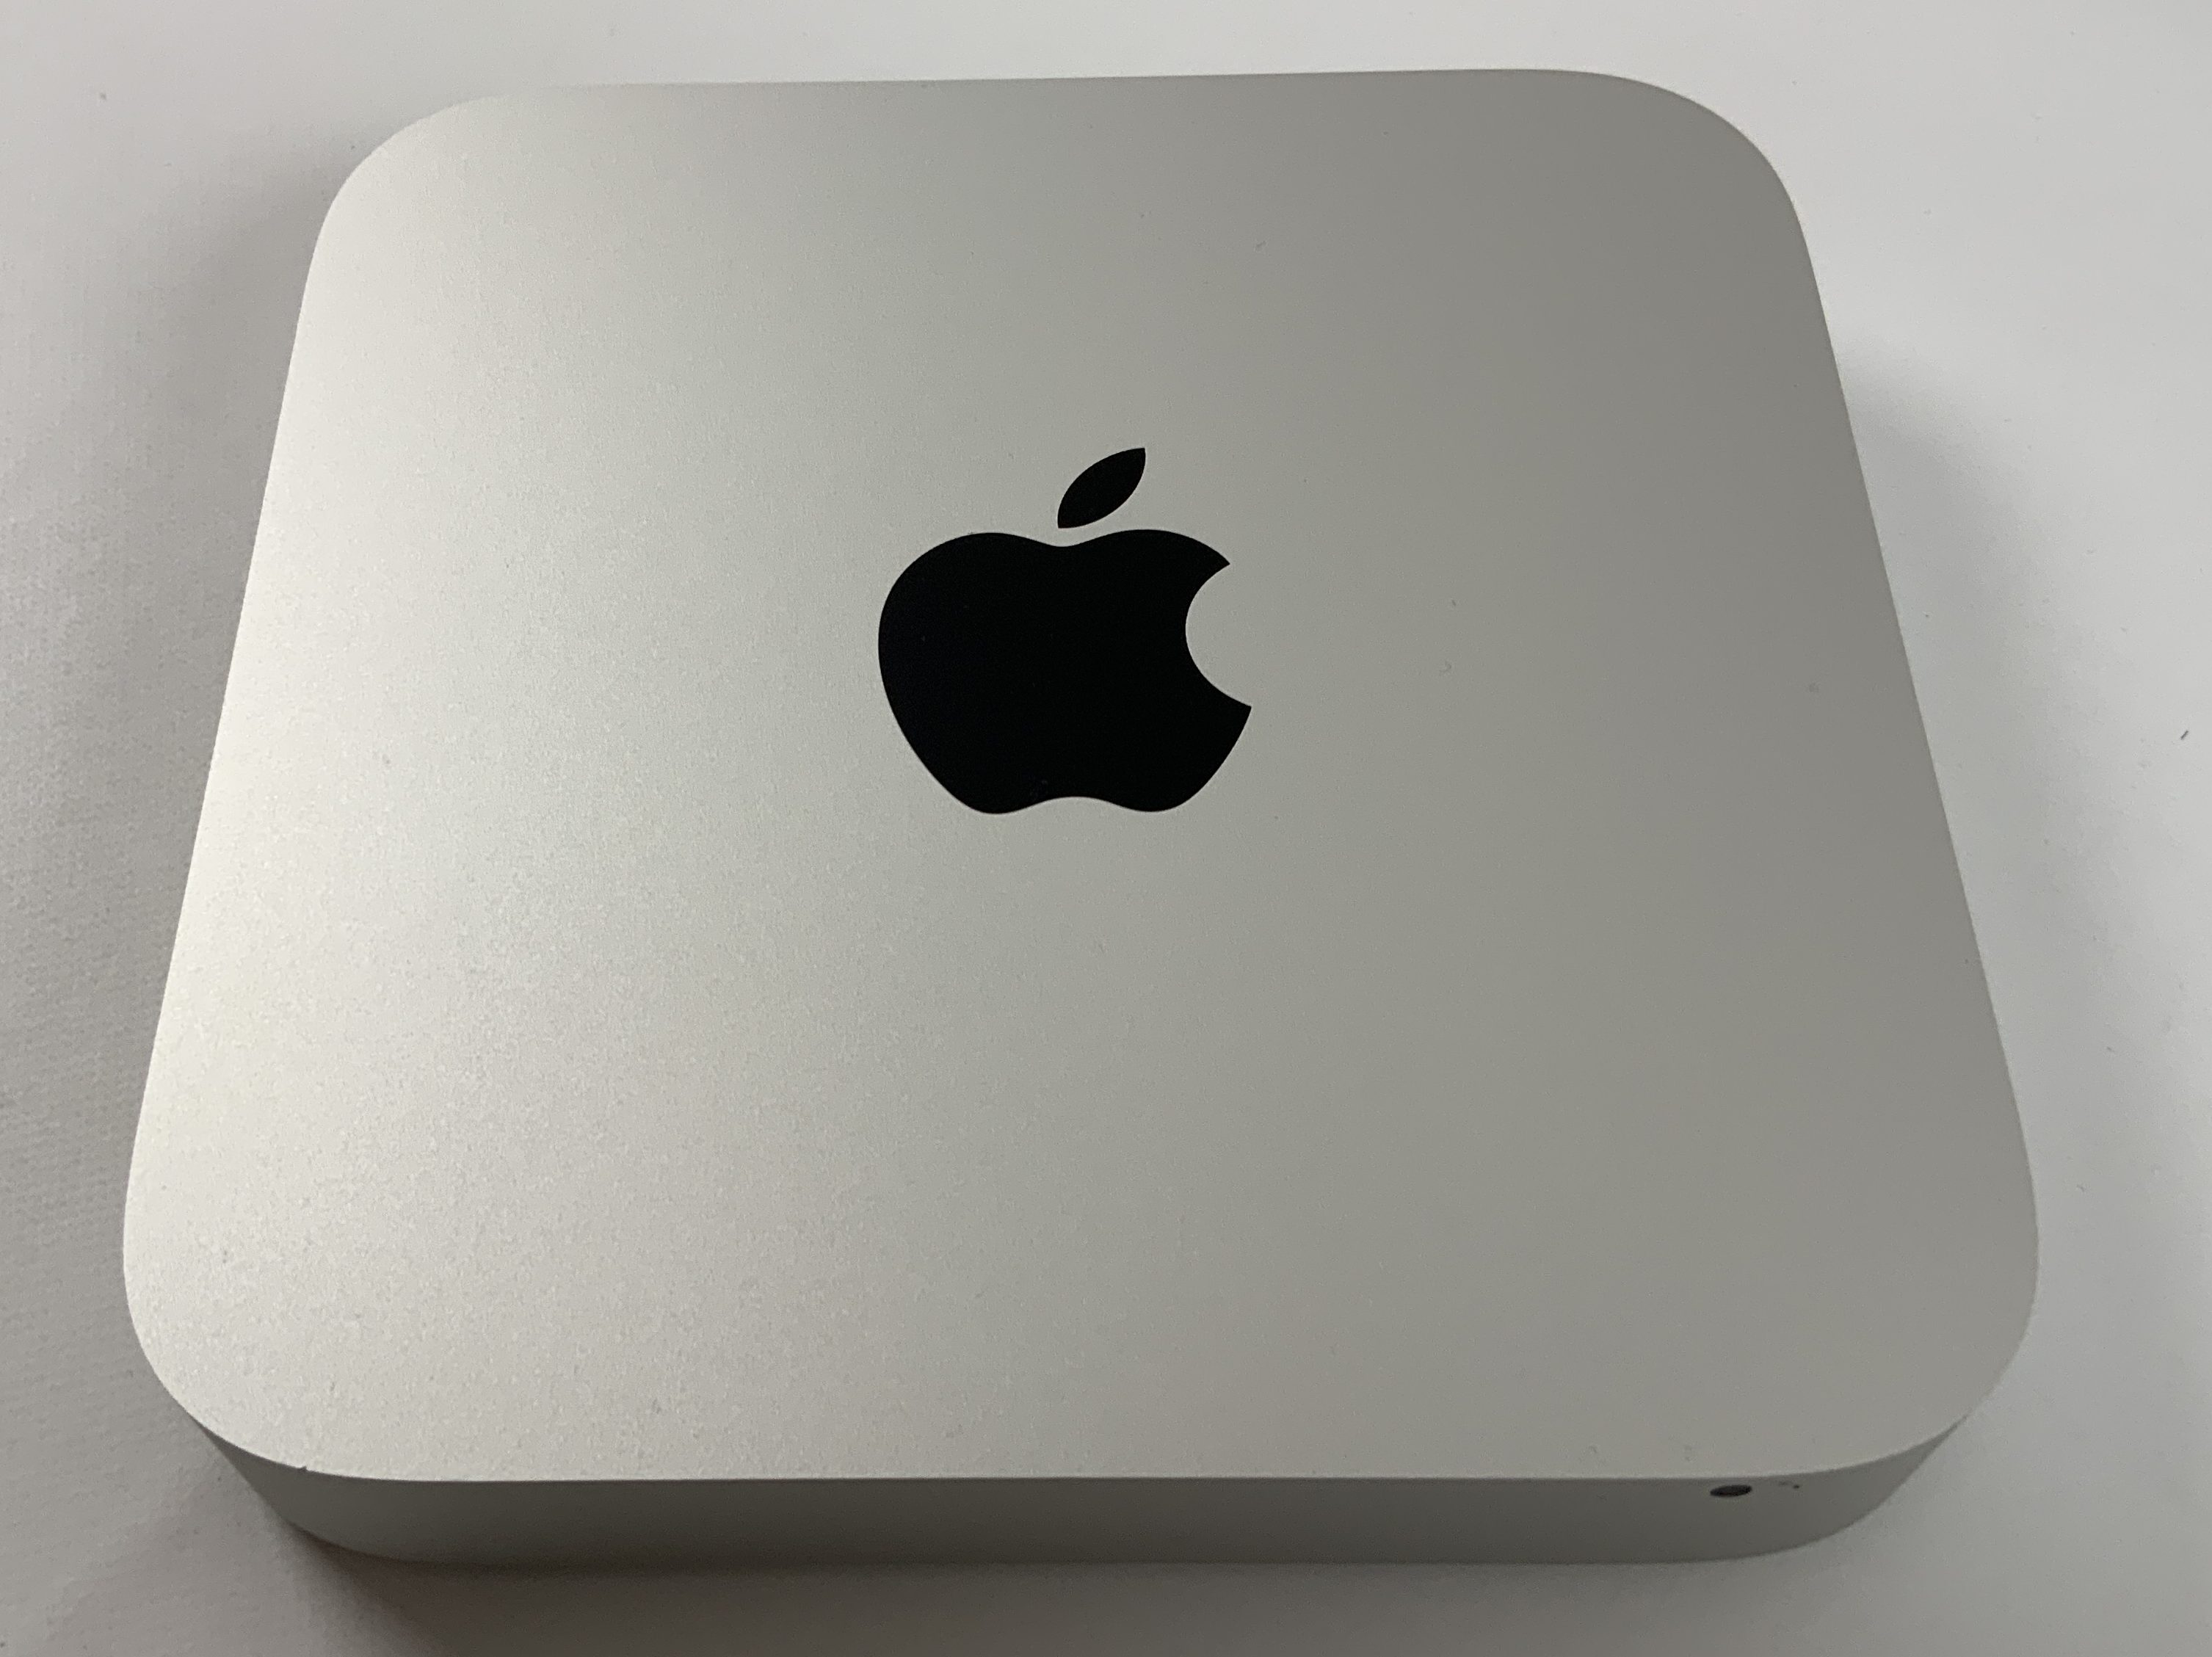 Mac Mini Late 2014 (Intel Core i5 2.6 GHz 8 GB RAM 1 TB HDD), Intel Core i5 2.6 GHz, 8 GB RAM, 1 TB HDD, image 1